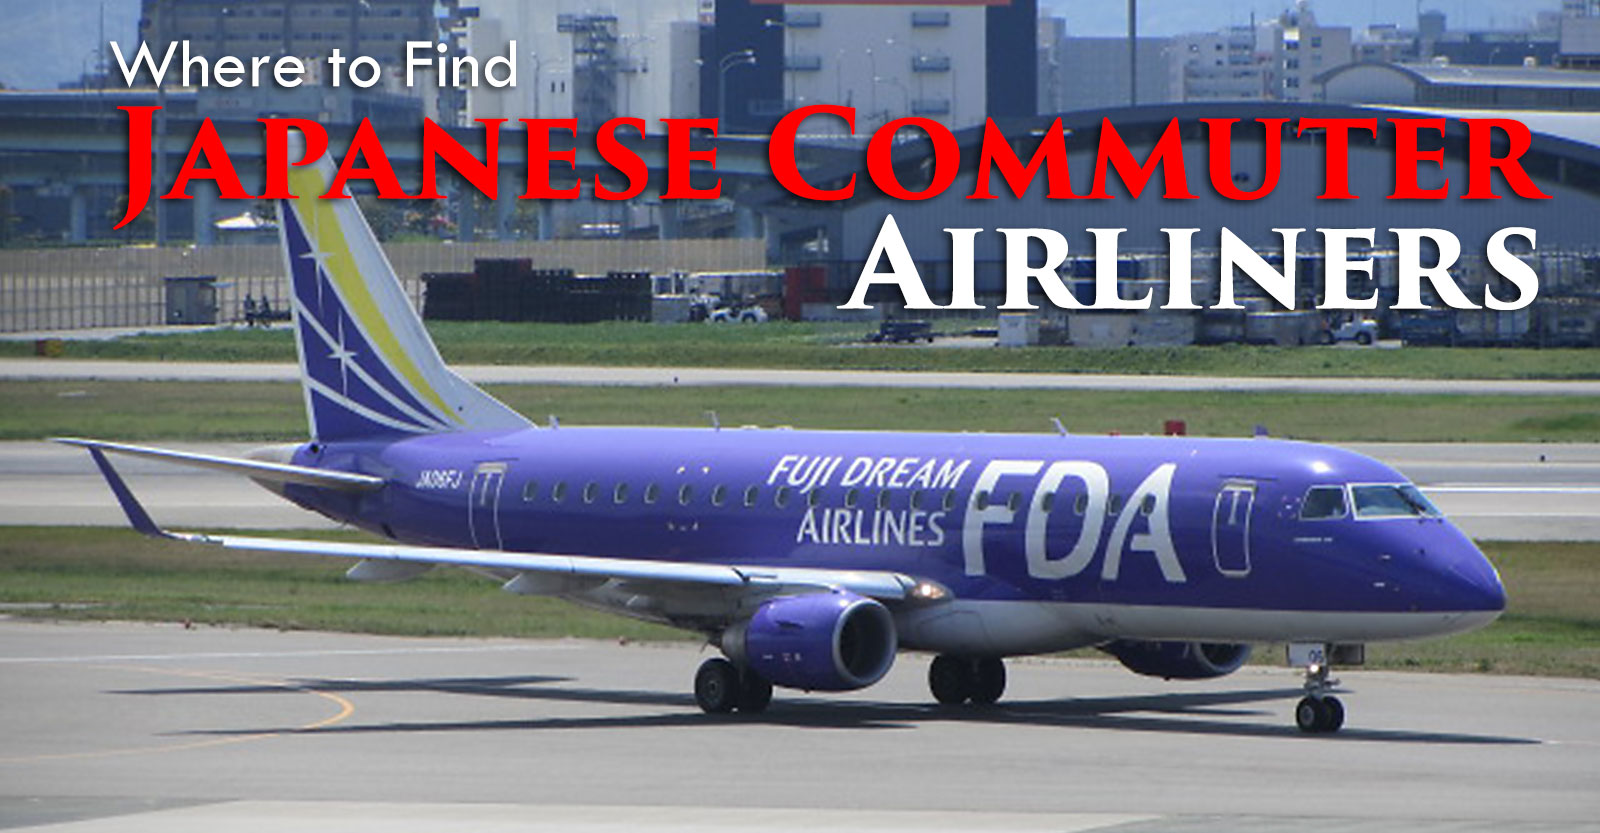 Japanese Commuter Airliners